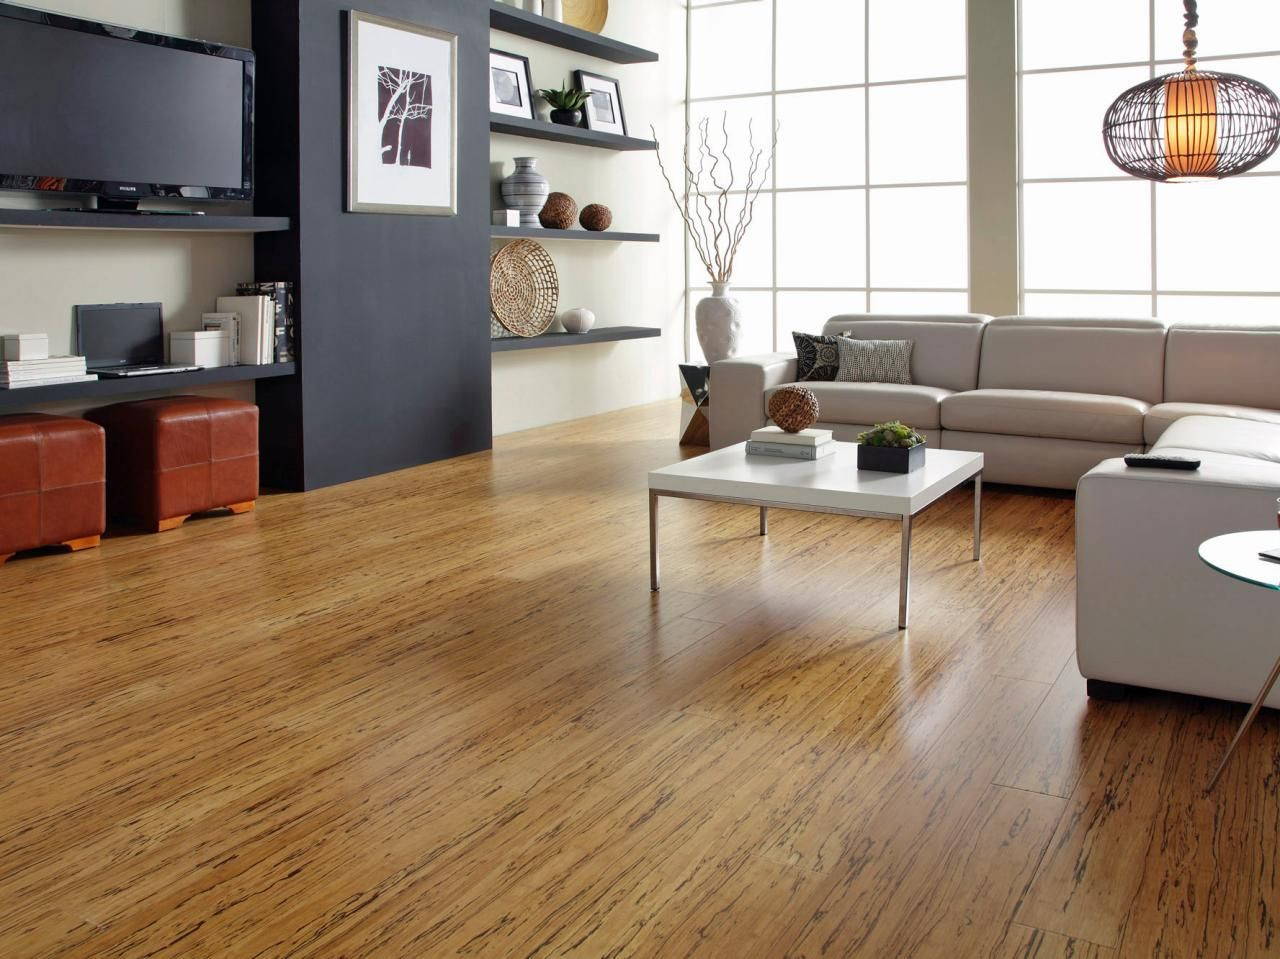 What Does Hand Scraped Hardwood Flooring Mean Of 8 Flooring Trends to Try Bamboo Floor Hgtv and Interiors Intended for 8 Flooring Trends to Try